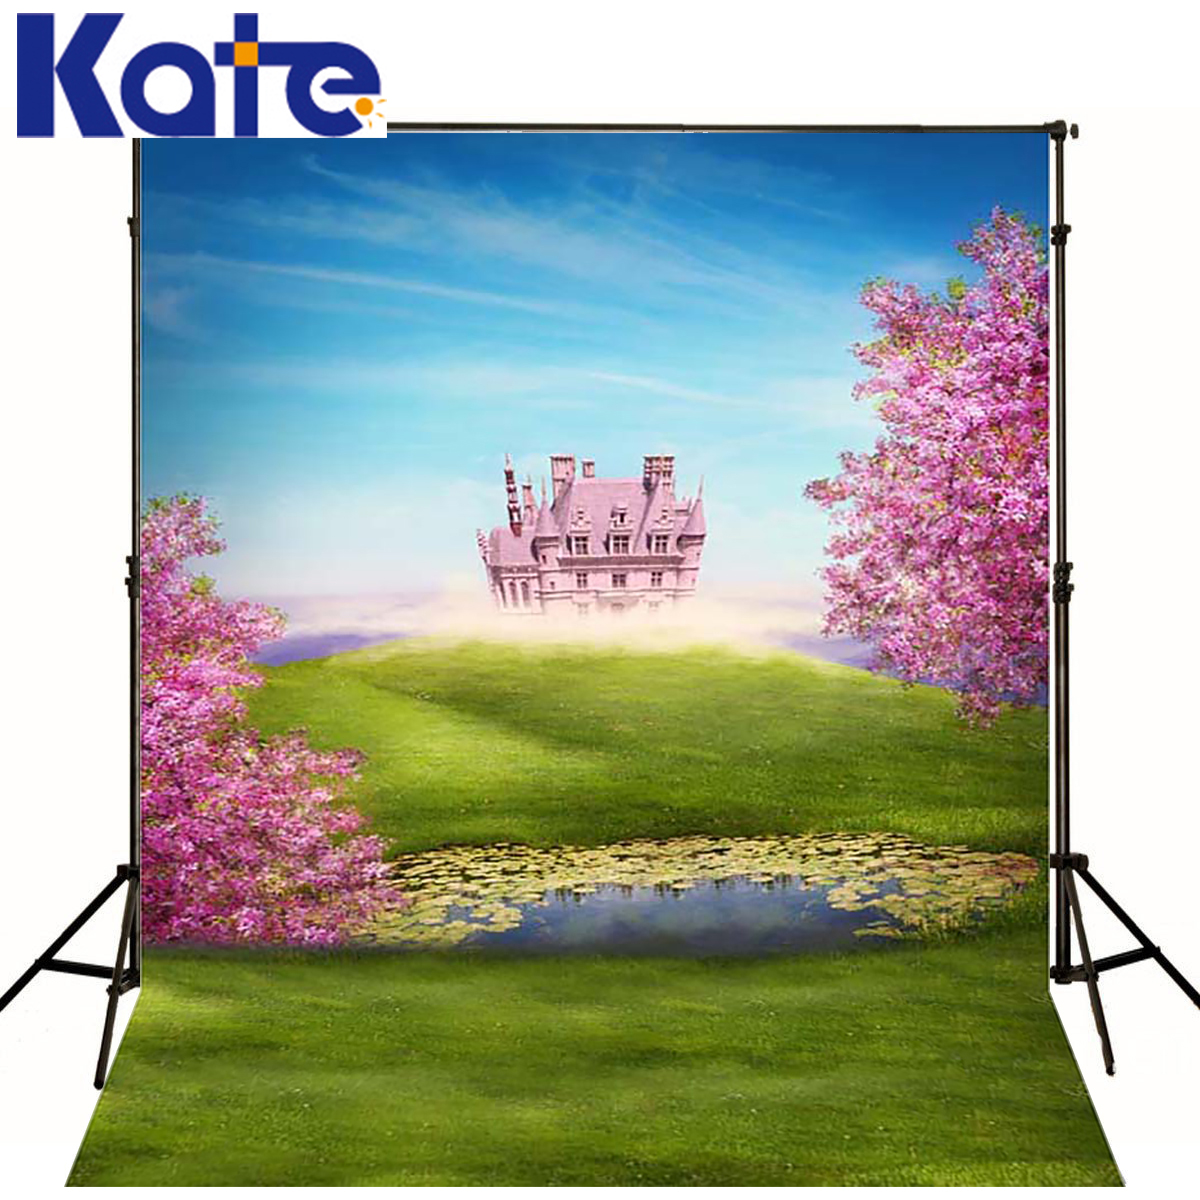 Kate Fairy Tale Castle Photography Background Spring Scenery Forest Wedding Backdrops for Children Photo Shoot <br>